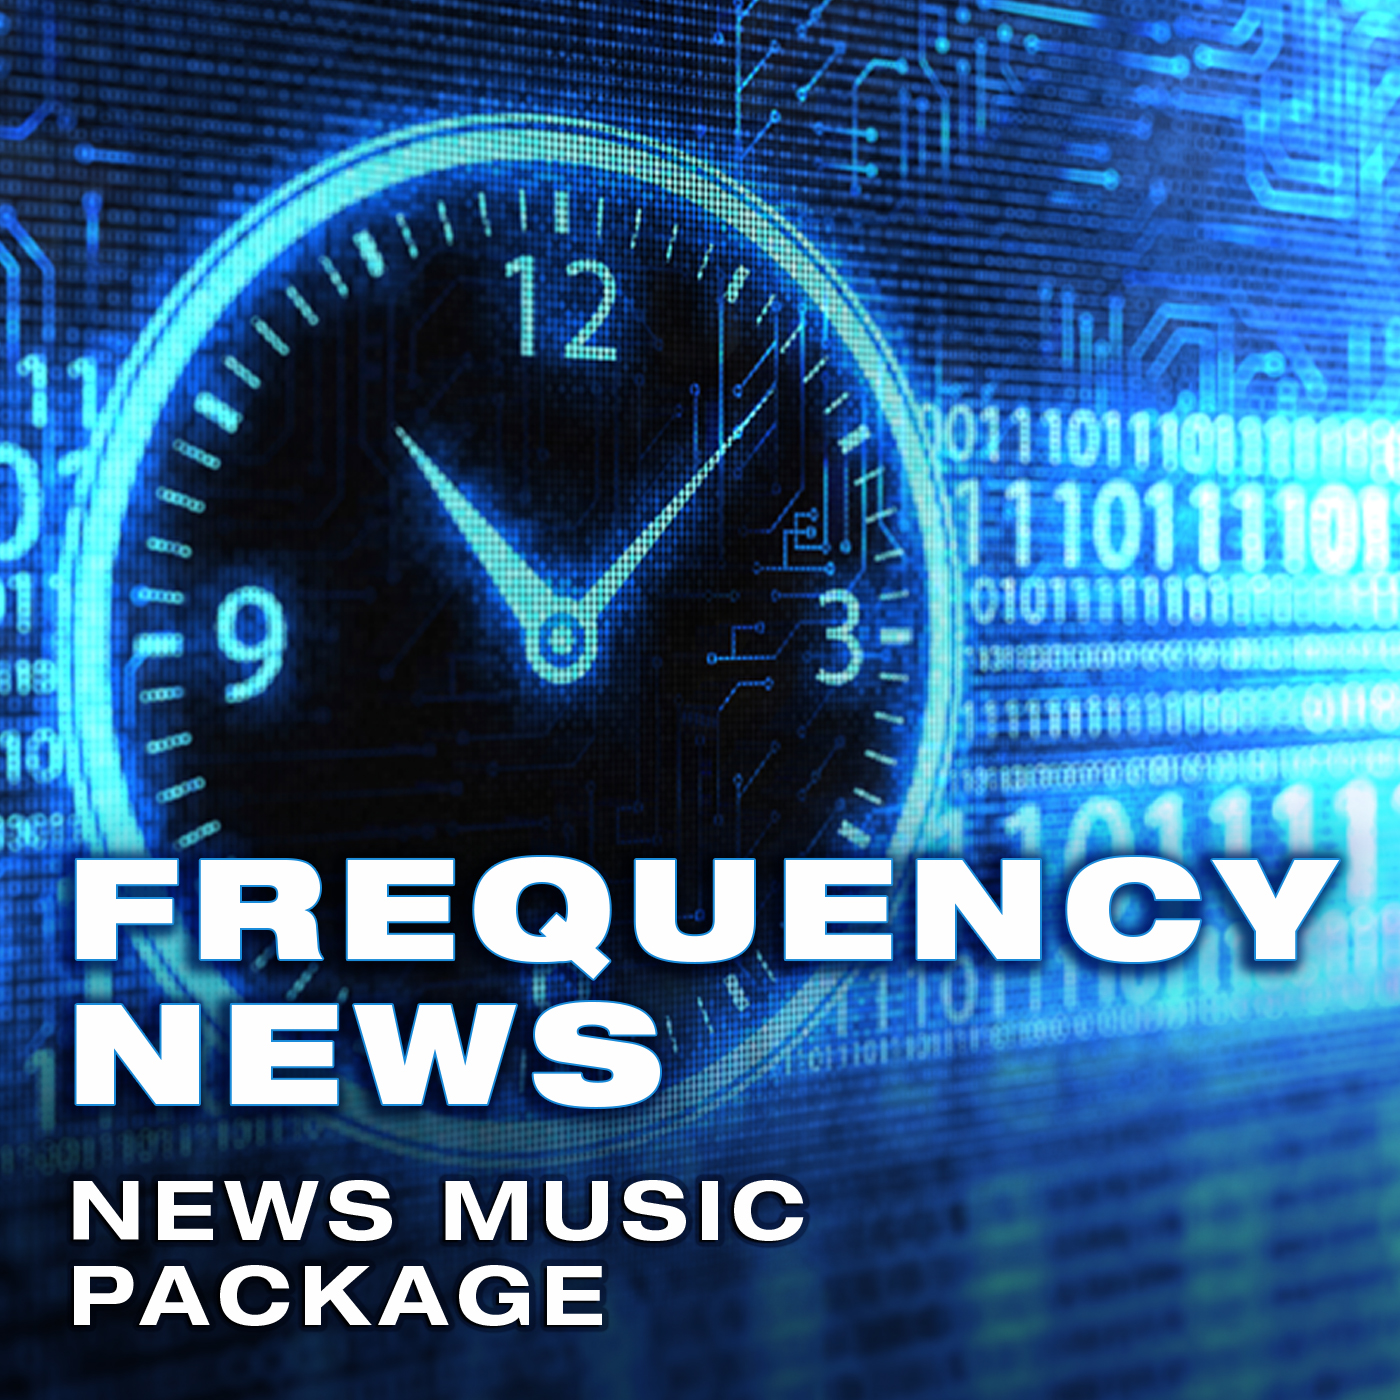 Frequency News Music Package